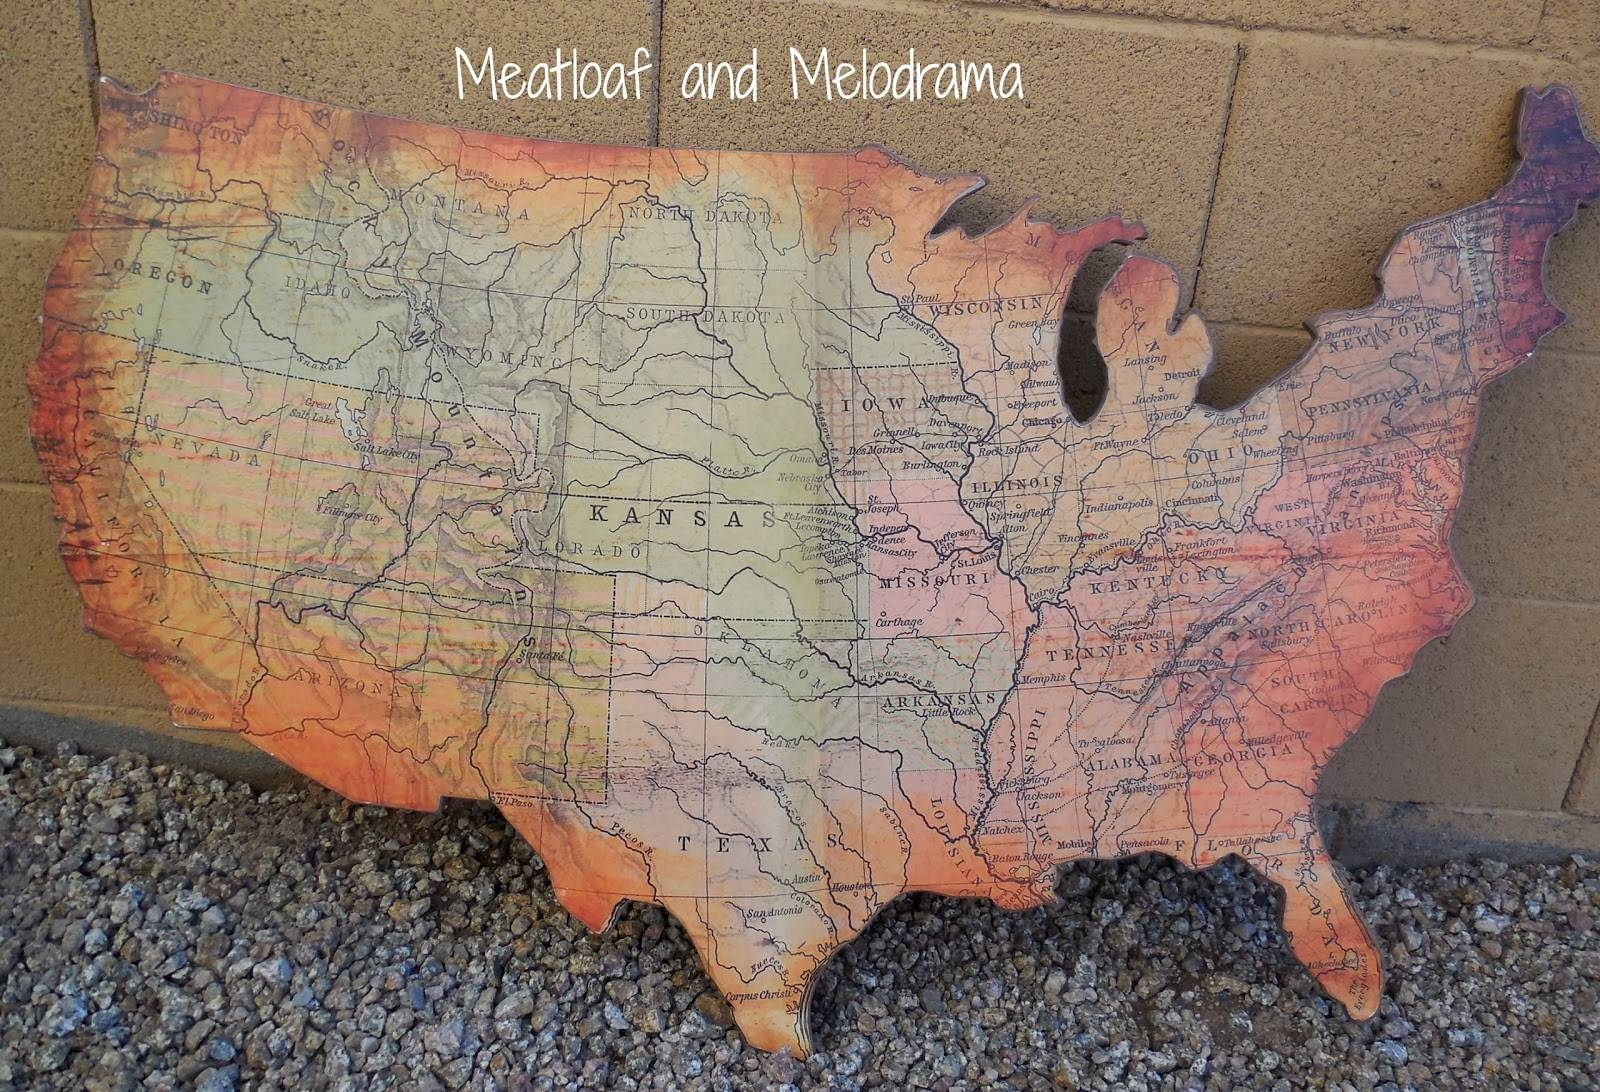 Rustic Wooden Wall Art – Meatloaf And Melodrama With Regard To Most Recently Released Us Map Wall Art (View 9 of 20)